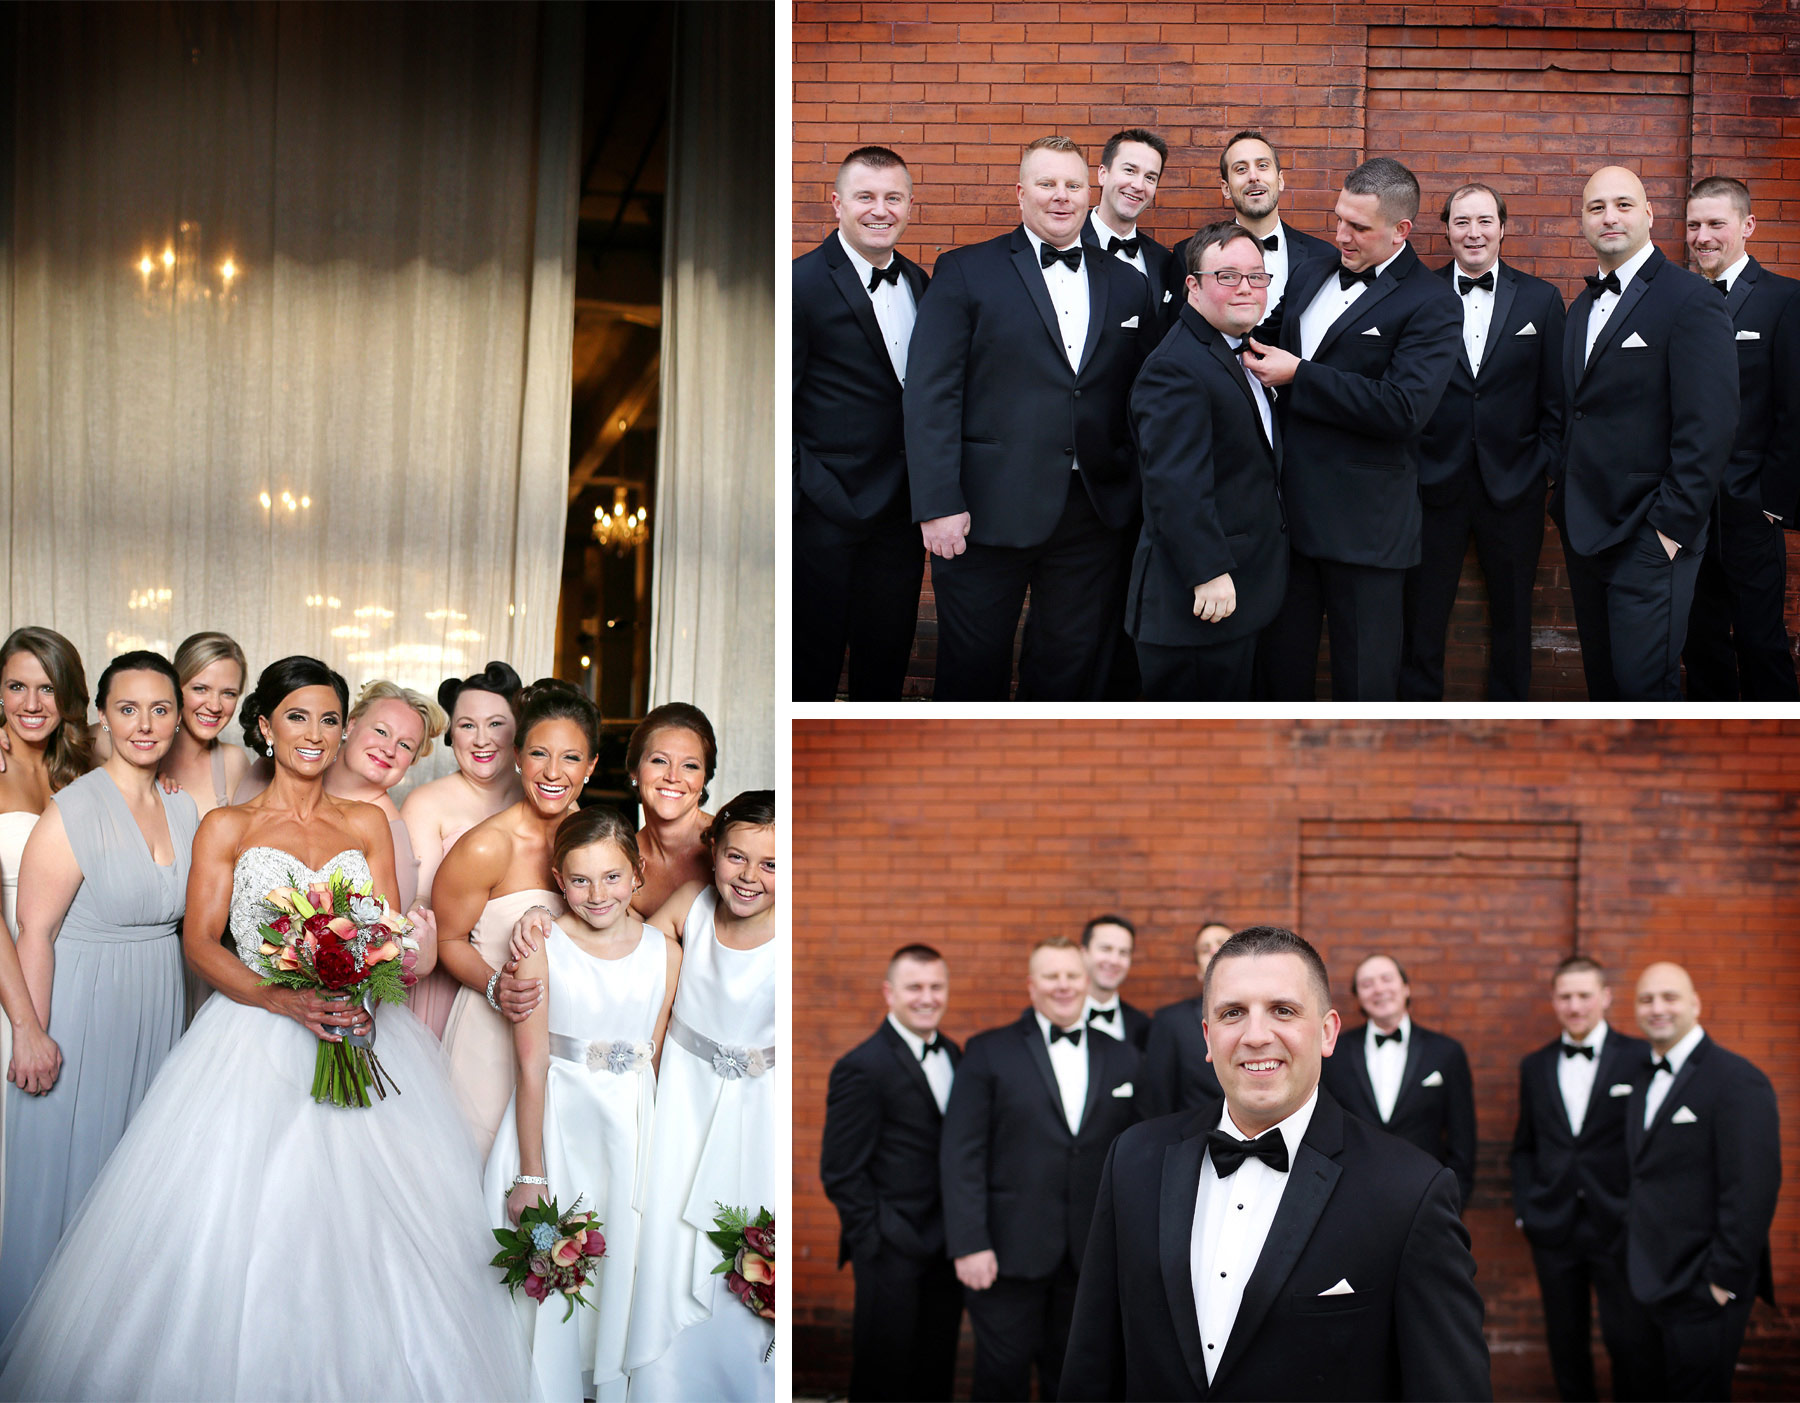 07-Minneapolis-Minnesota-Wedding-Photography-Aria-Downtown-Industrial-Wedding-Party-Groups-Melanie-and-Andrew.jpg